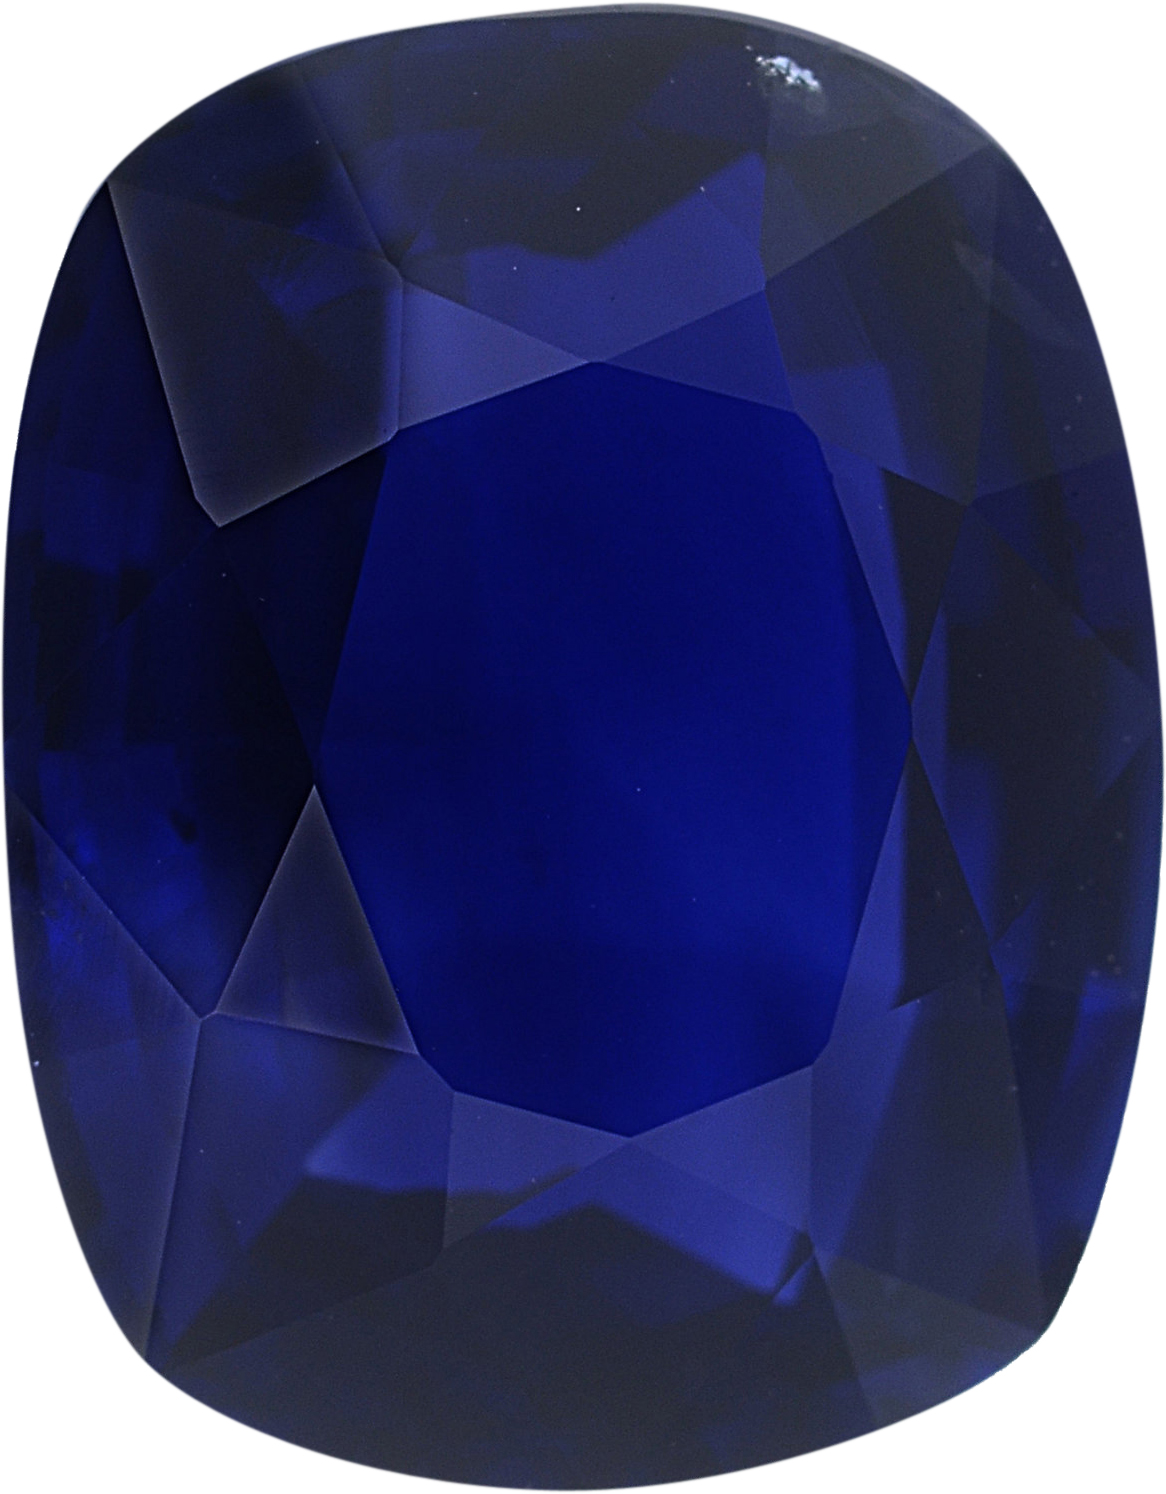 9.63 x 7.72 mm, Blue Loose Sapphire Gemstone in Antique Cushion Cut, Violetish Blue, 3.29 carats